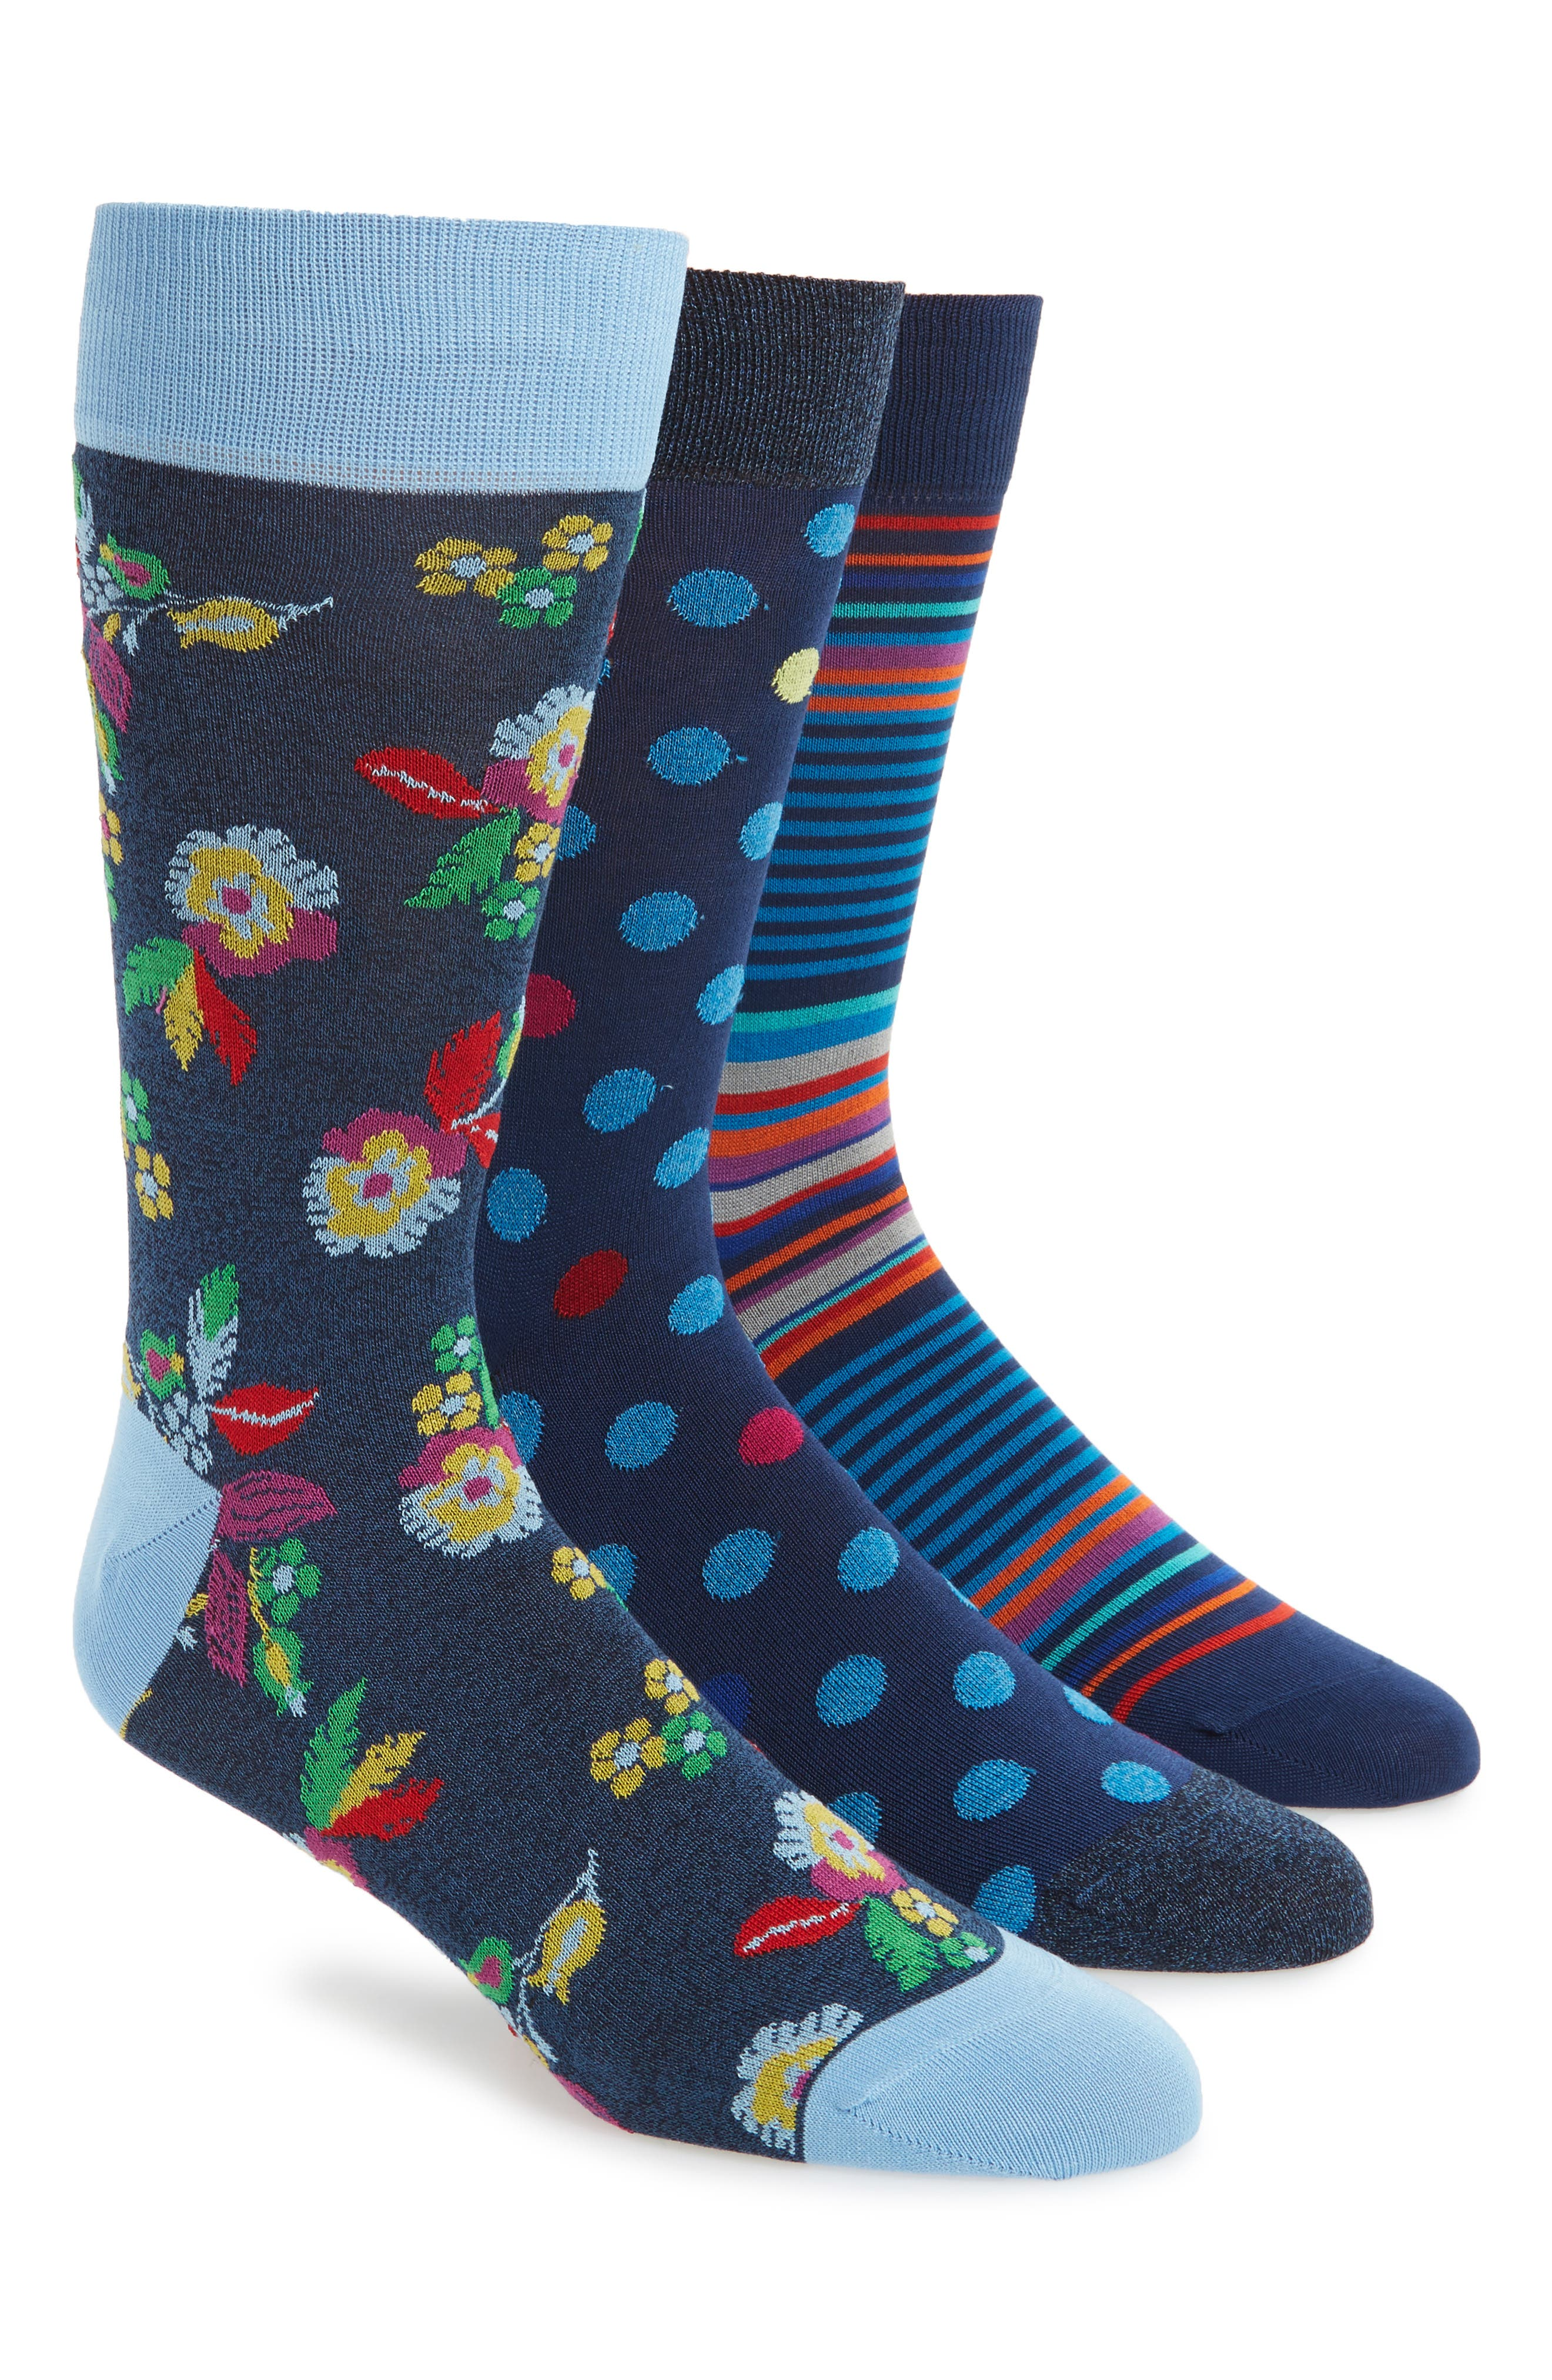 Alternate Image 1 Selected - Bugatchi 3-Pack Mixed Pattern Cotton & Cashmere Blend Socks ($59.85 Value)